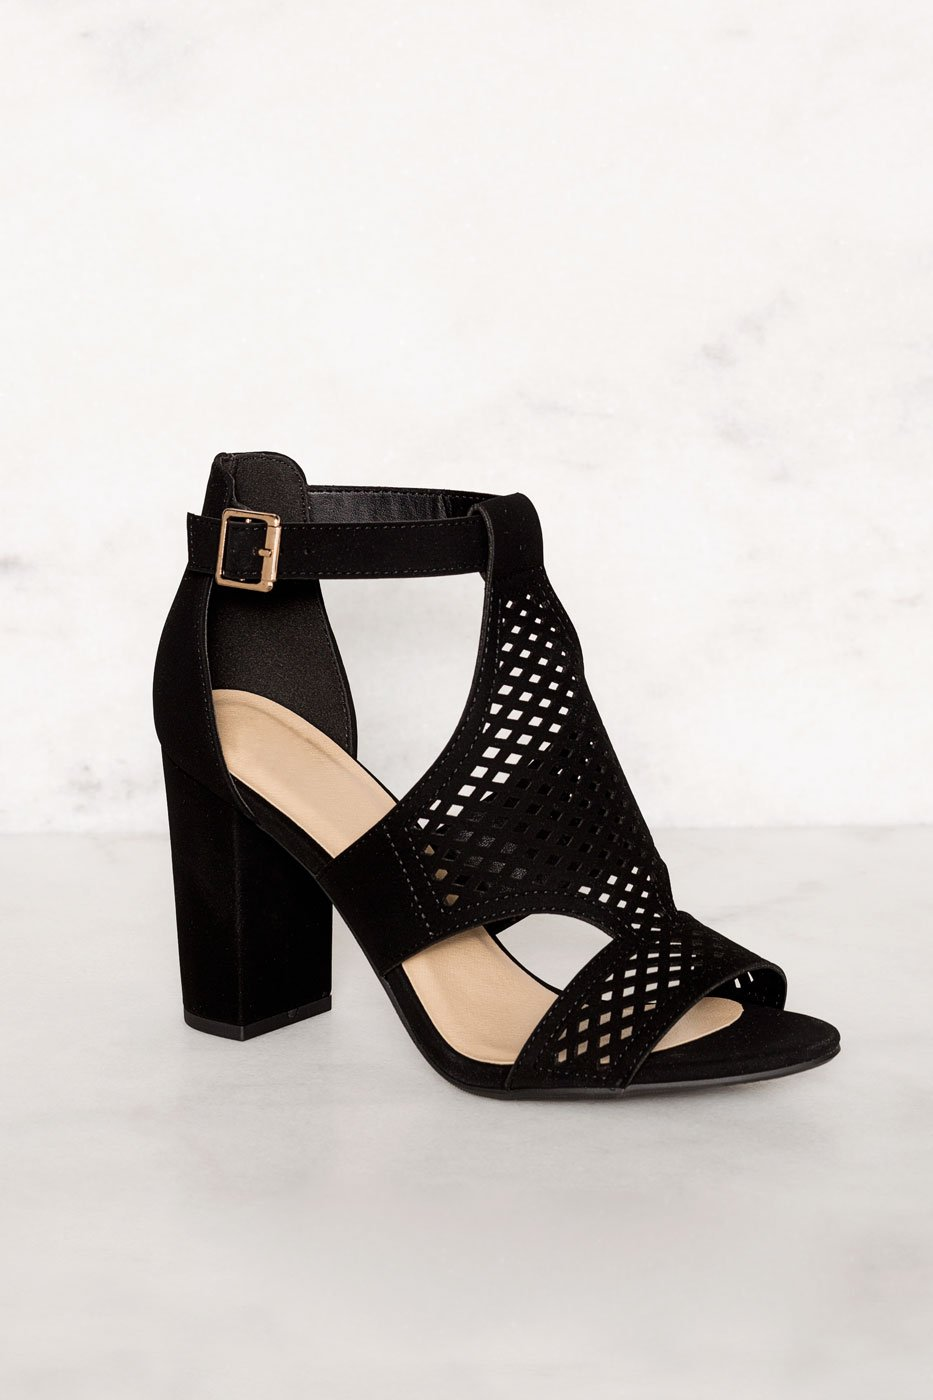 f4340dcd0f2 ... Shoes - Belfor Block Heel Sandals - Black ...